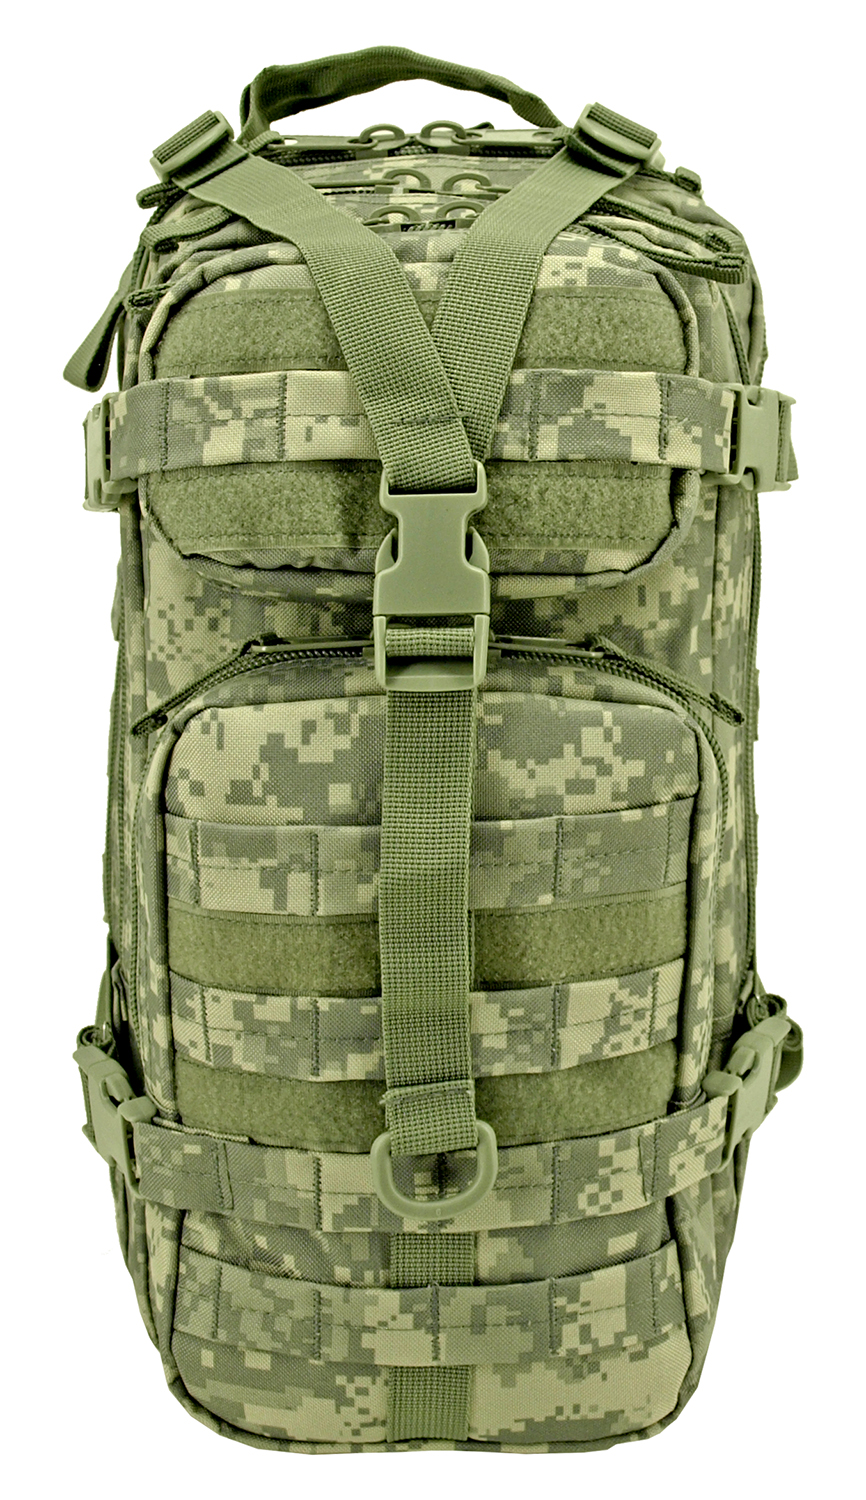 Tactical Assault Backpack - Digital Camo